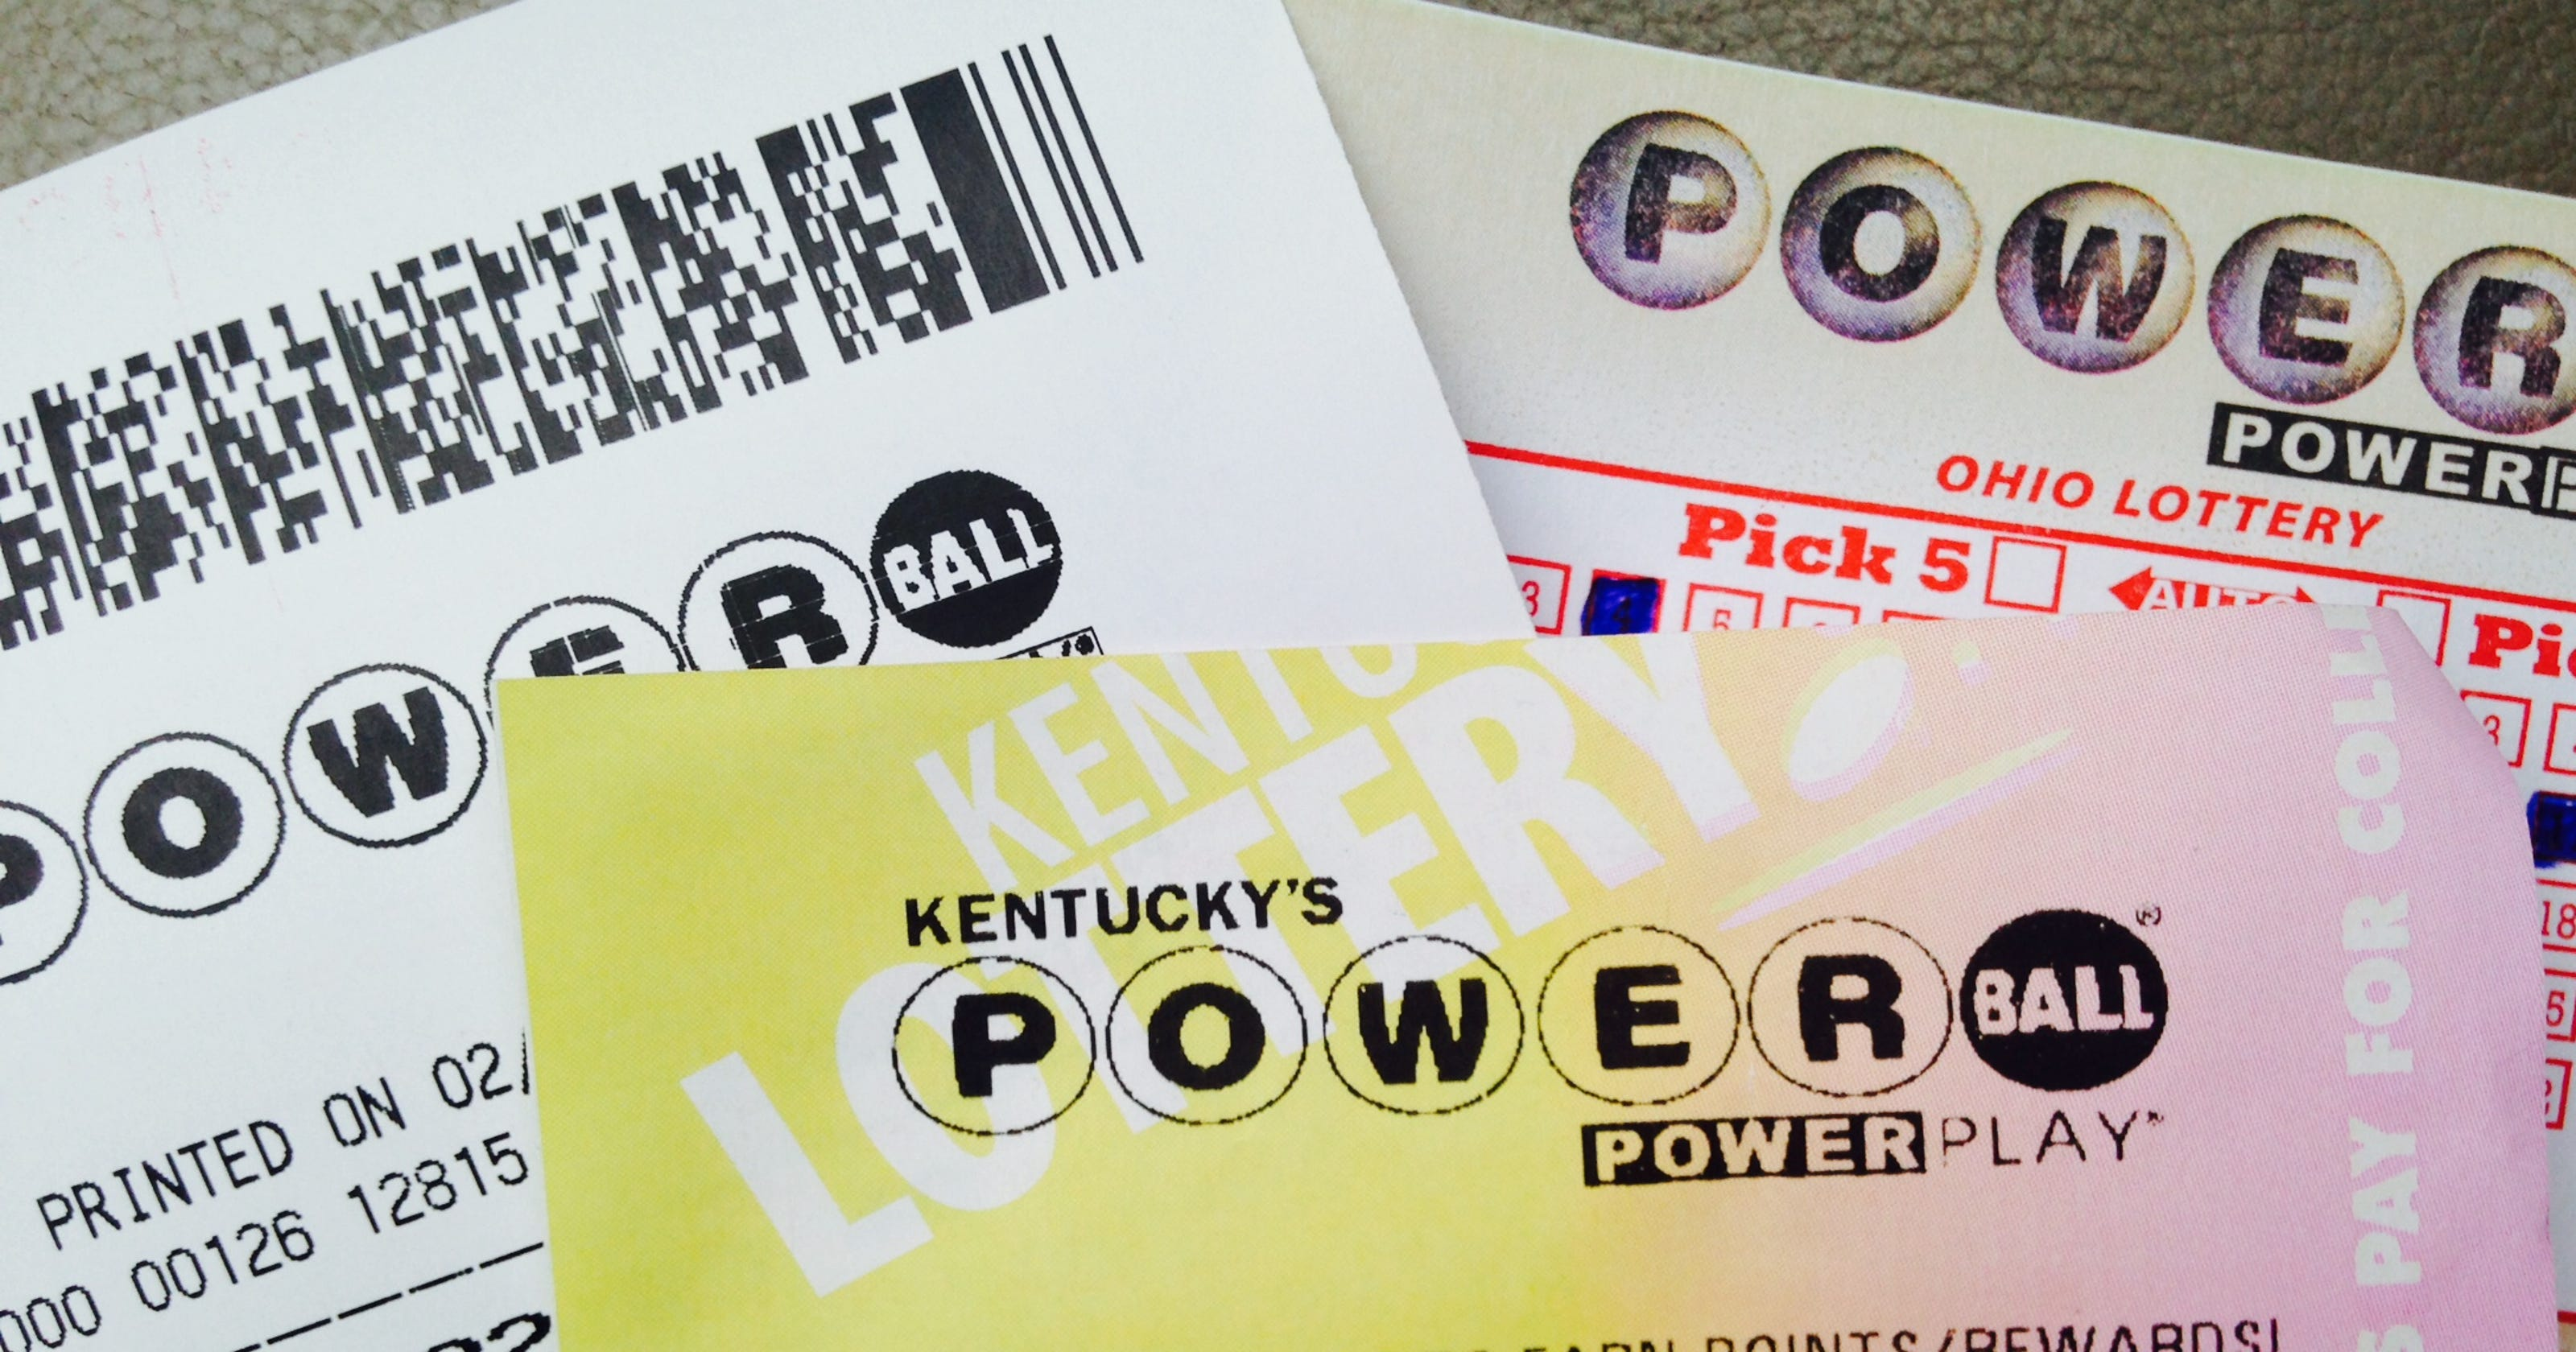 5 Ohio stores have sold $1M lotttery tickets since 2011